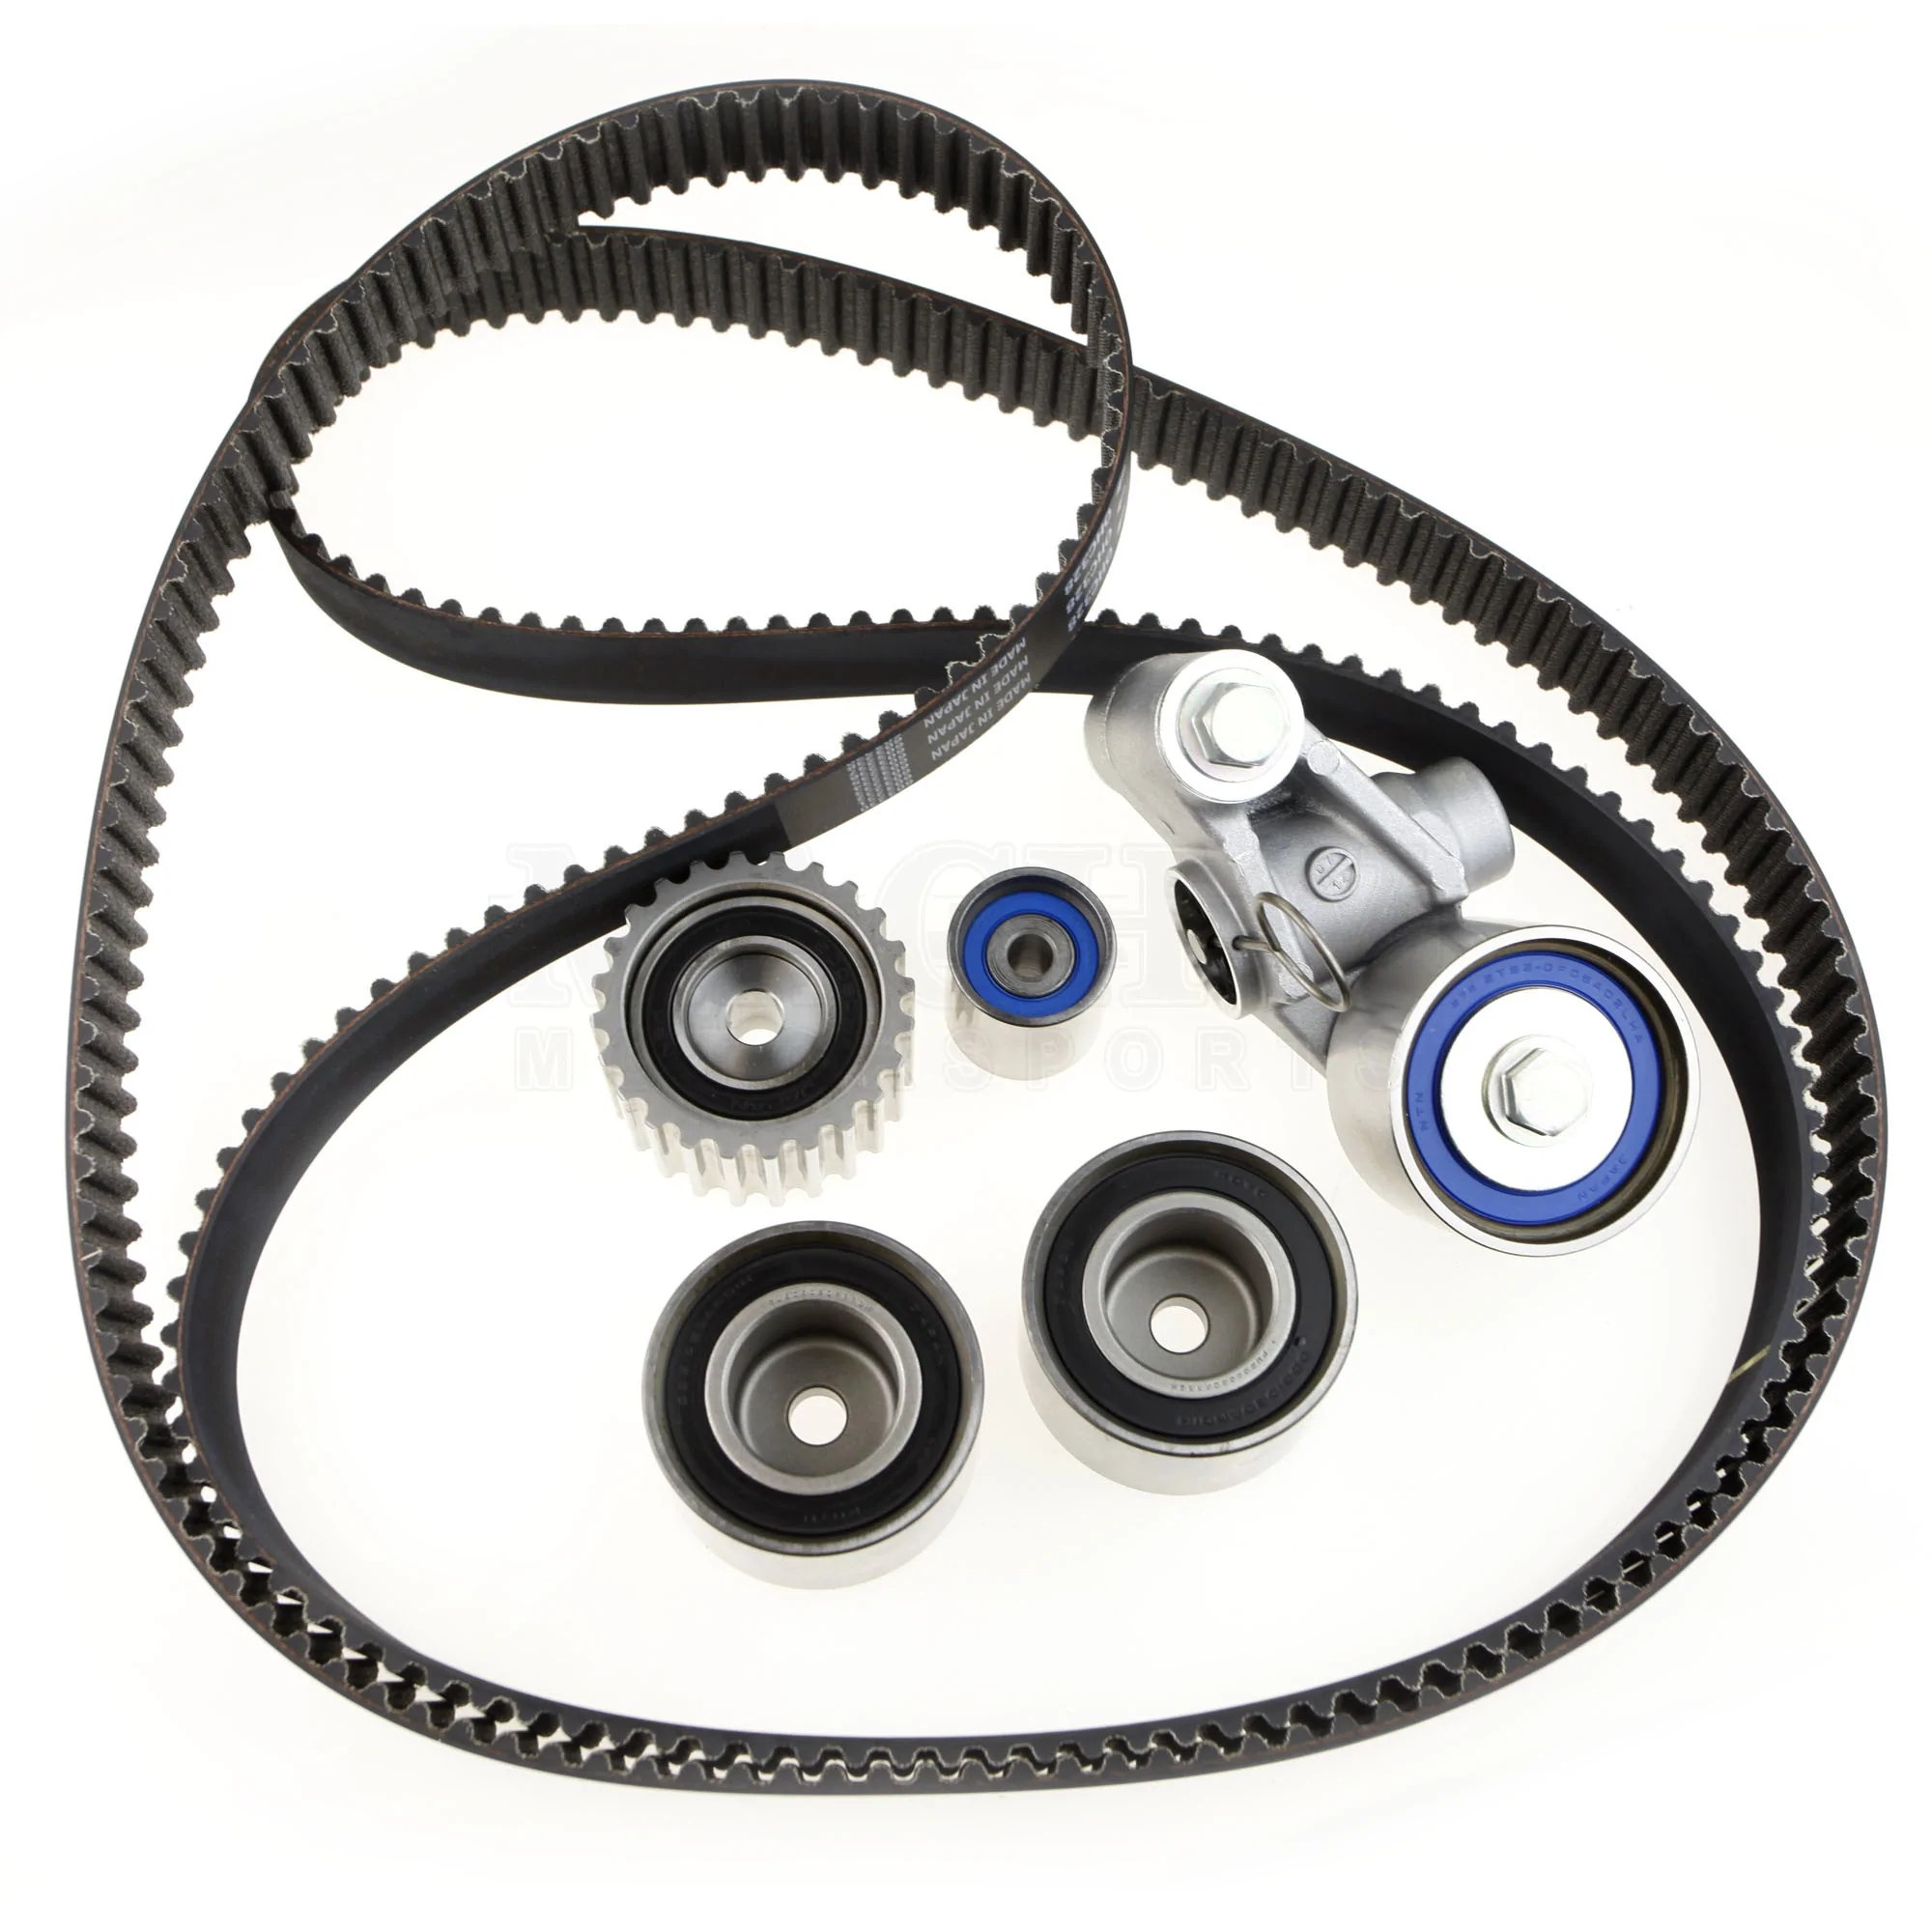 small resolution of oem quality timing belt kit without water pump 2002 2014 wrx 2004 2018 sti 2003 2013 forester 2005 2009 legacy gt outback xt